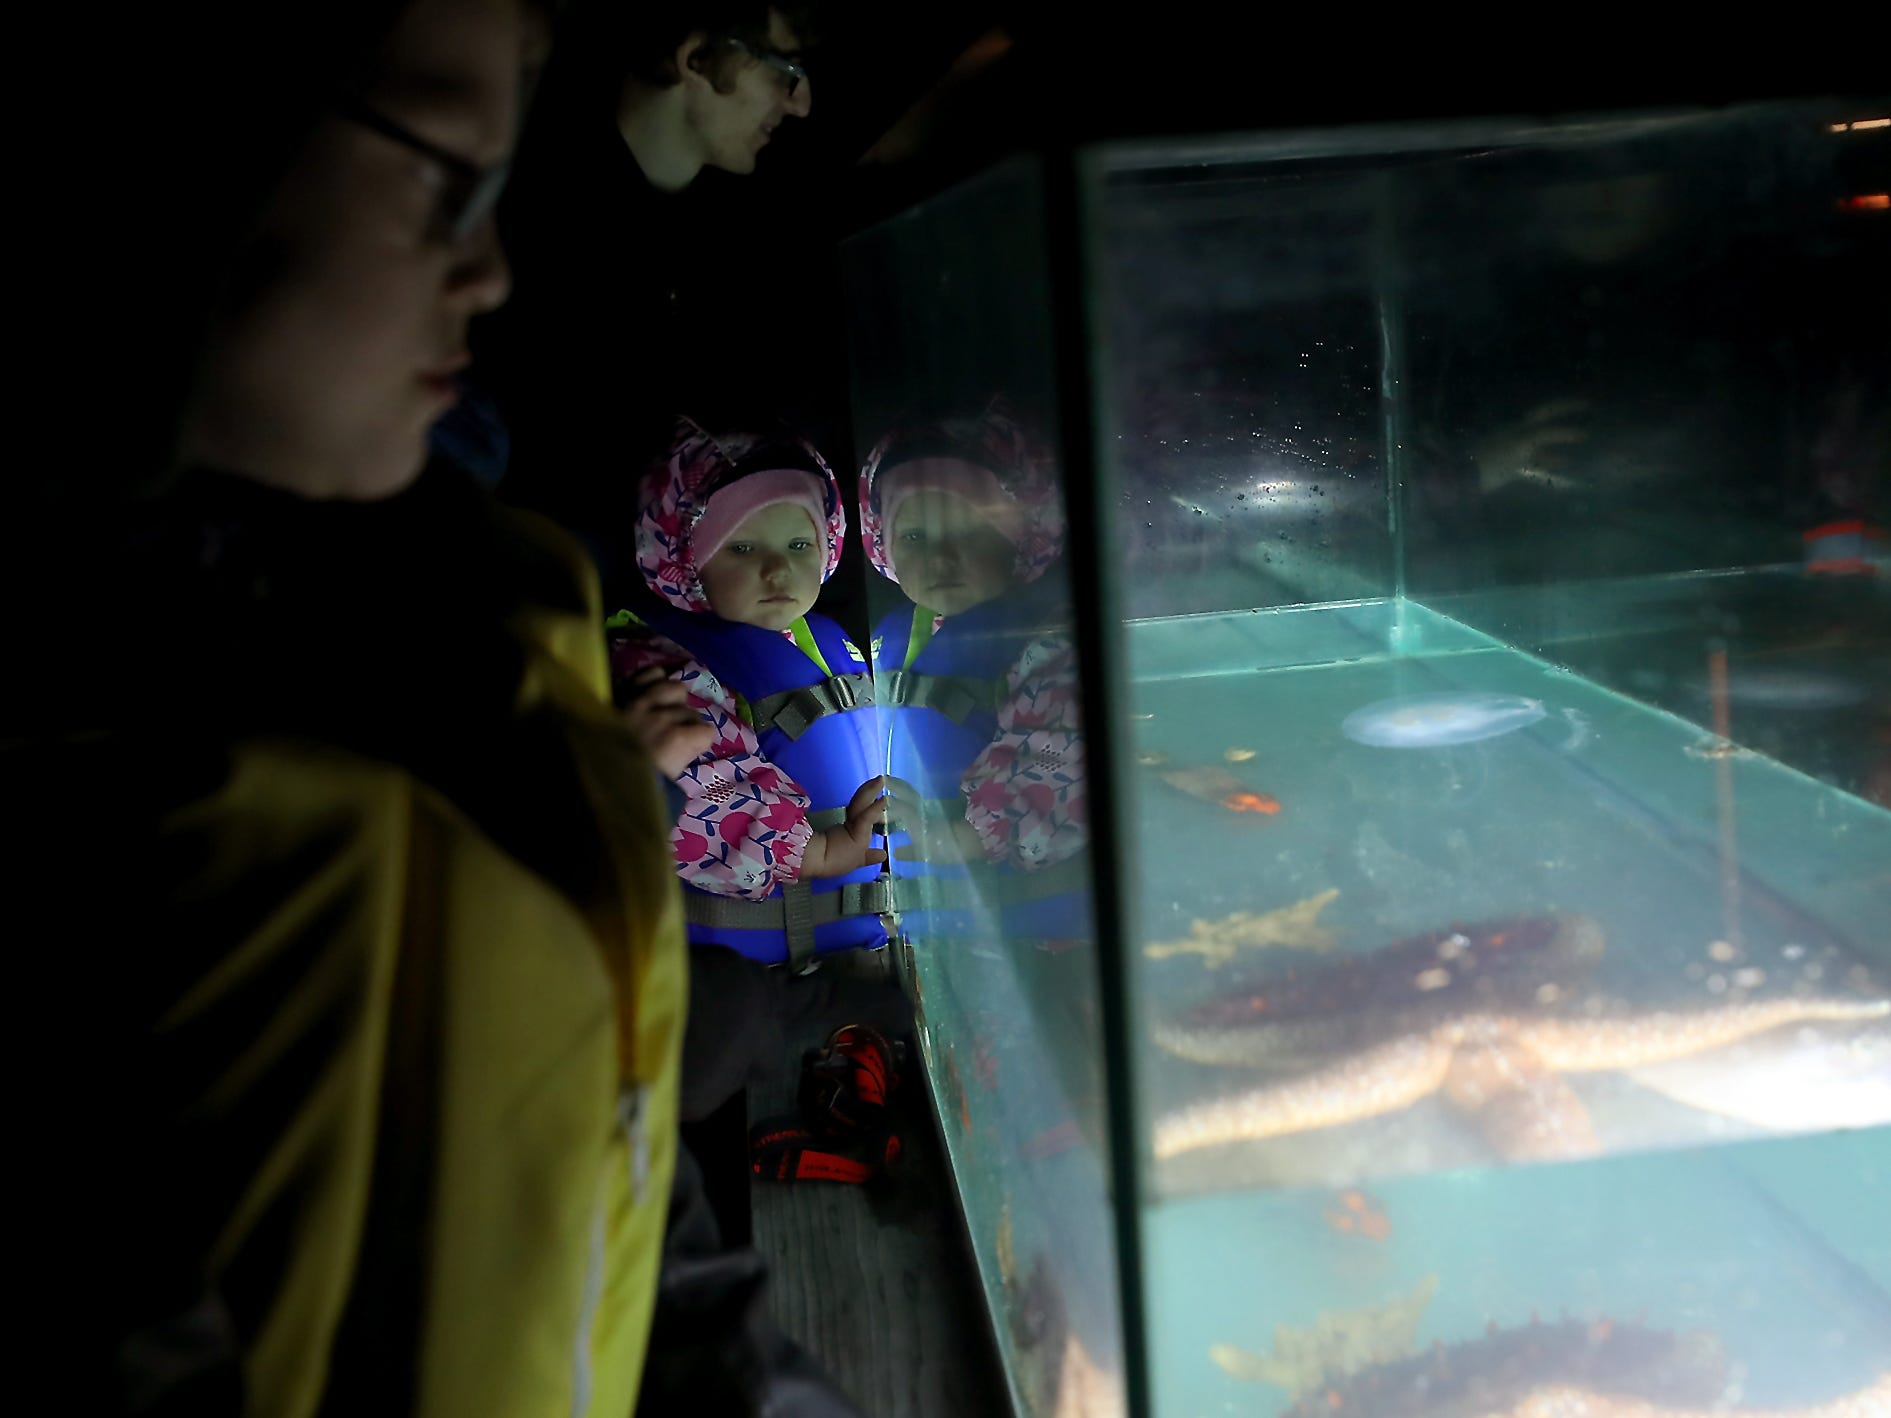 Caroline Stottlemyer, 2, watches the creatures in the tank during the Night Time Pier Peer at the Brownsville Marina on Friday, March 1, 2019.